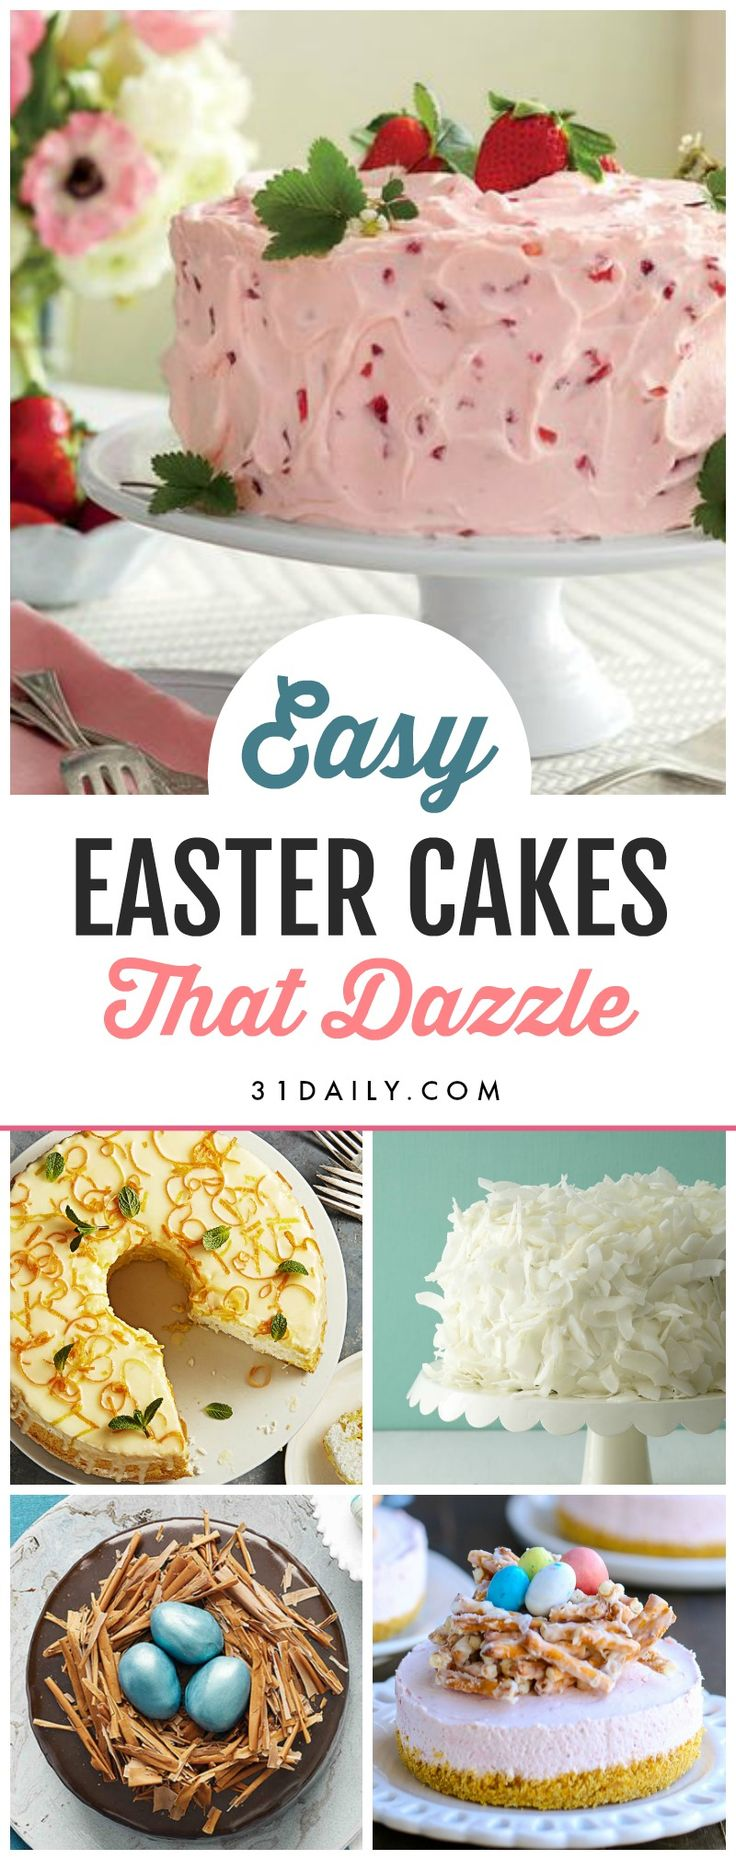 Easy Easter Cake Recipes That Will Dazzle   31Daily.com #EasterRecipes #EasterCakes #Easter #31Daily